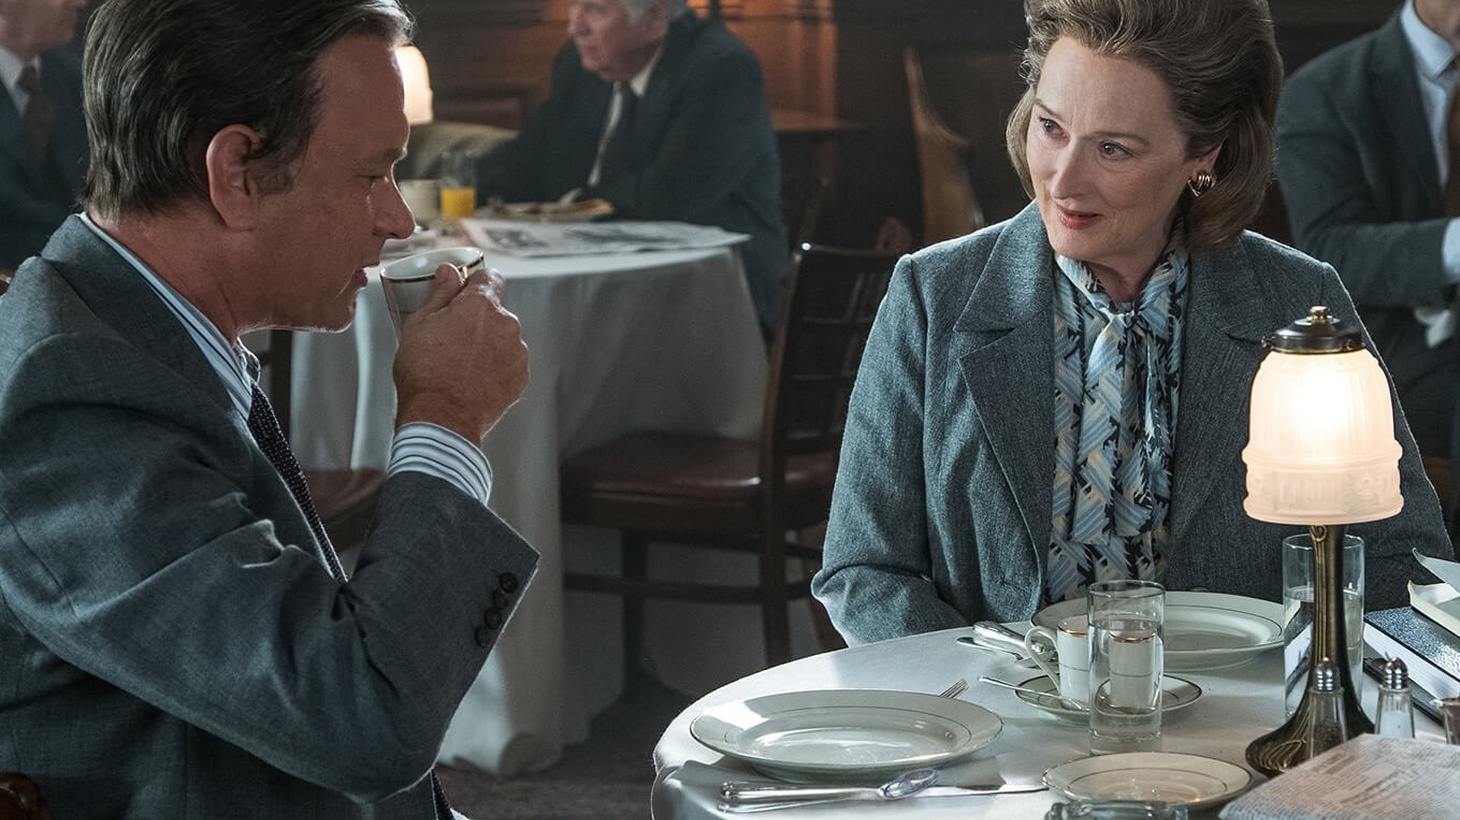 The most important movie opening this holiday season is The Post.